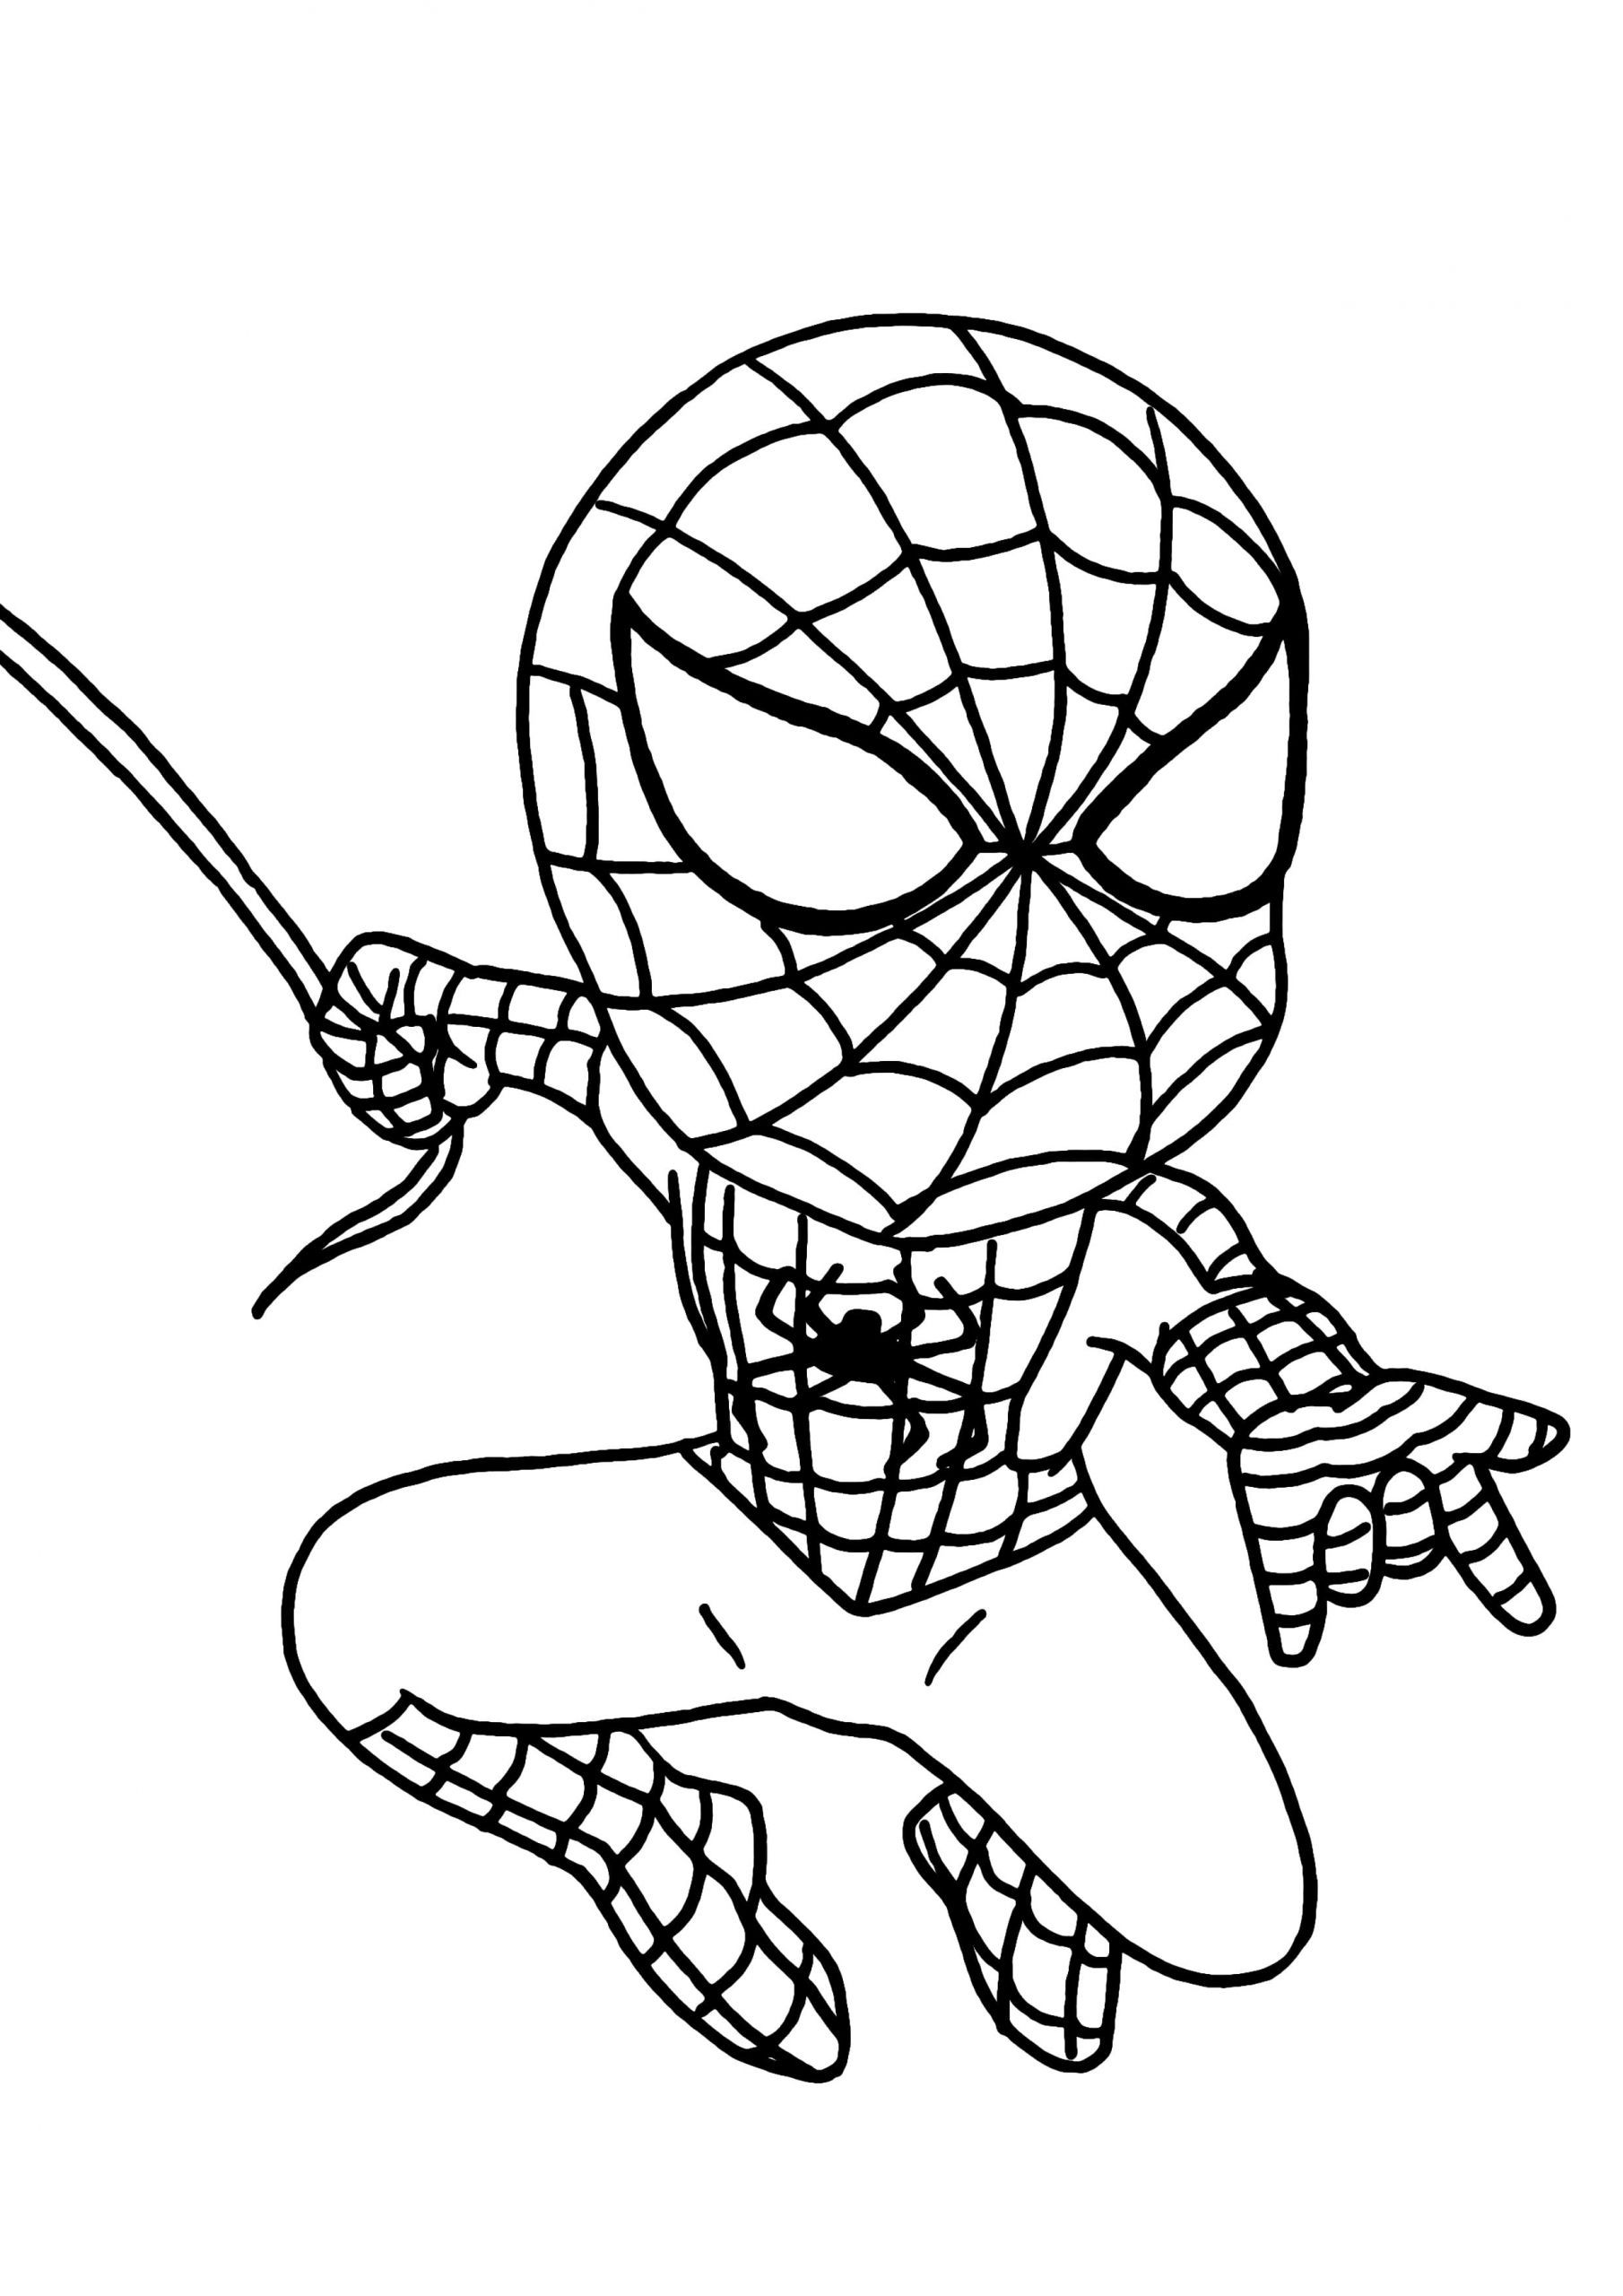 Supereroi Da Colorare Unico Disegni Da Colorare Di Spiderman Stampa Online Supereroe Of Super Nel 2020 Disegni Da Colorare Disegni Supereroi